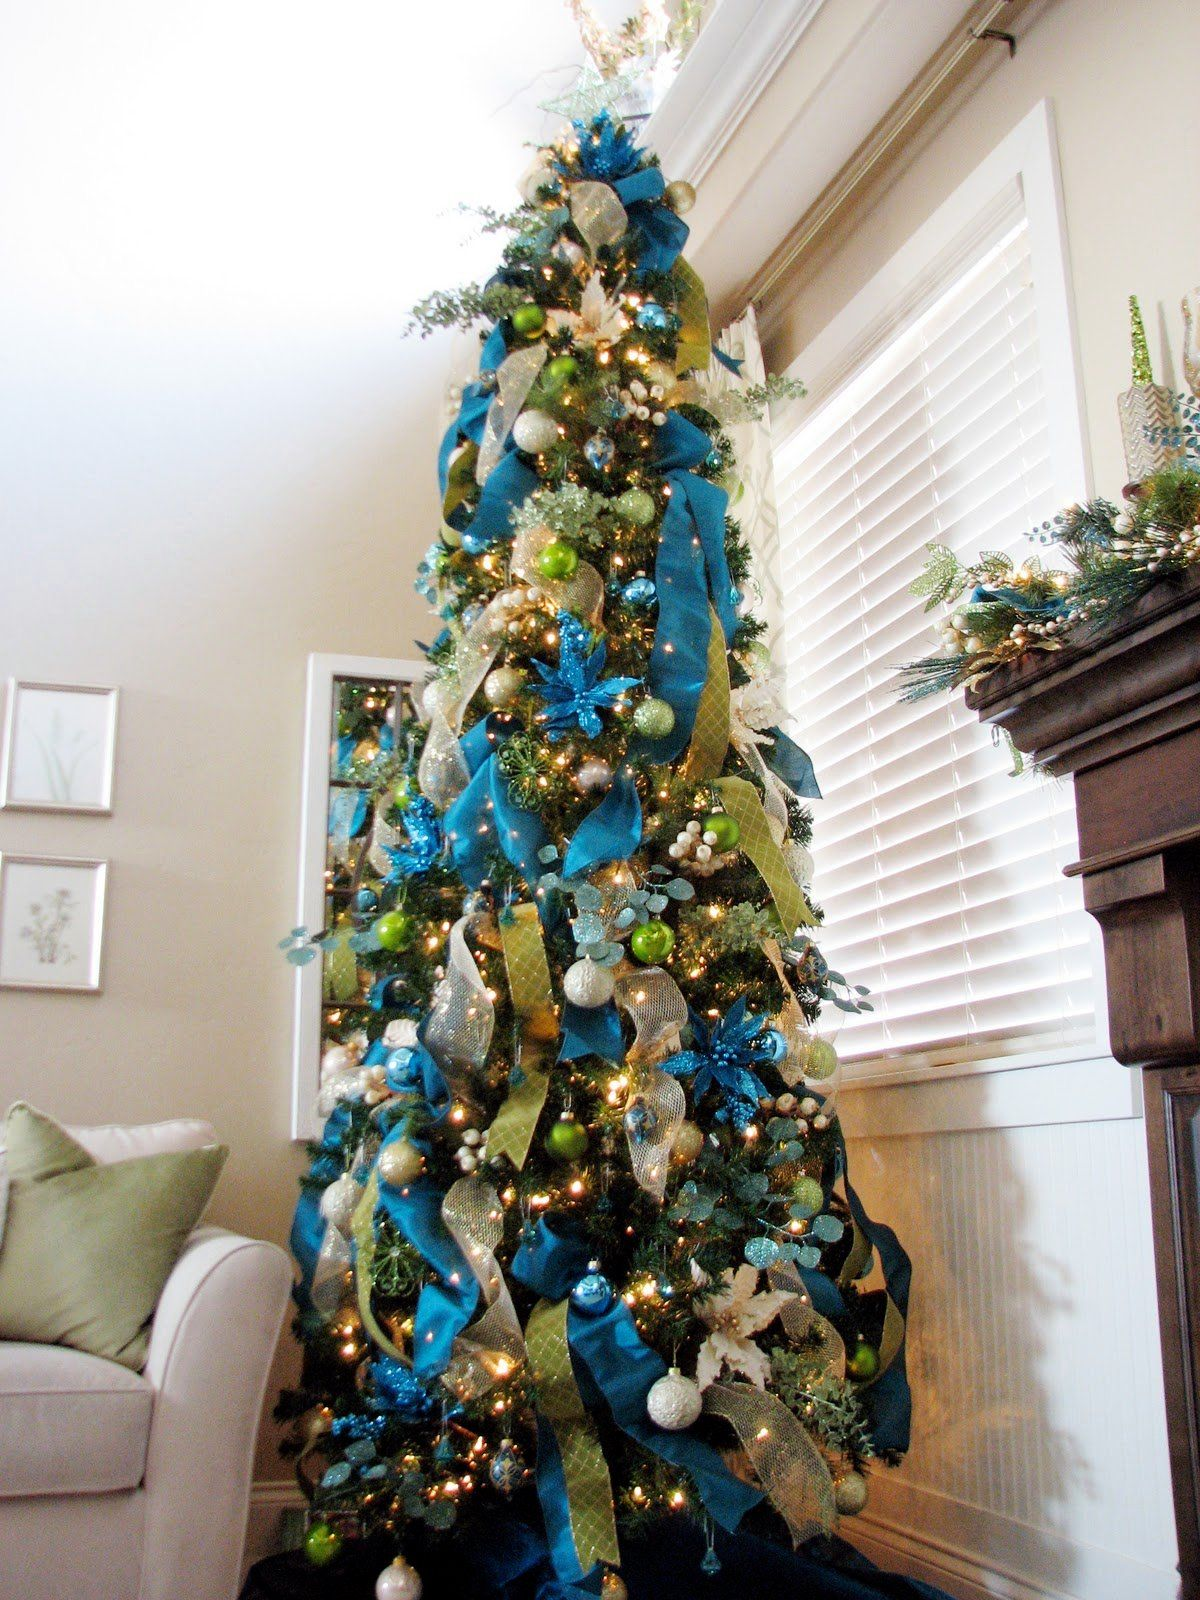 christmas tree decoration ideas for 2015 - Christmas Tree Decorating Ideas 2015